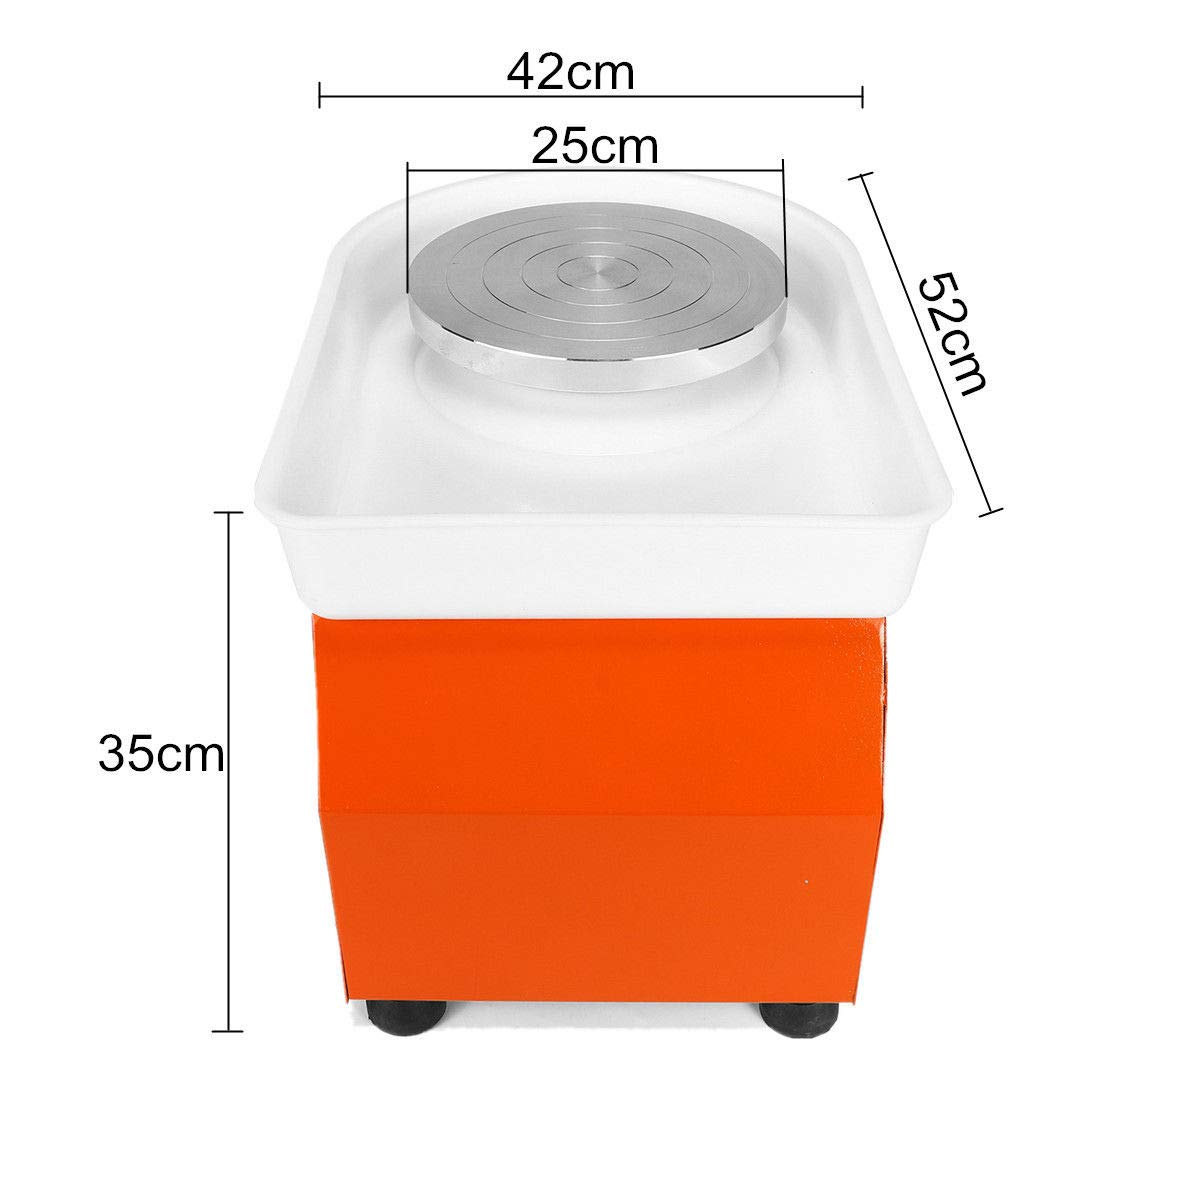 110V 350W Electric Pottery Wheel Machine with Foot Pedal Ceramic Work Clay Craft Electric Pottery Wheel DIY Clay Tool for Adults by RETERMIT (Image #8)